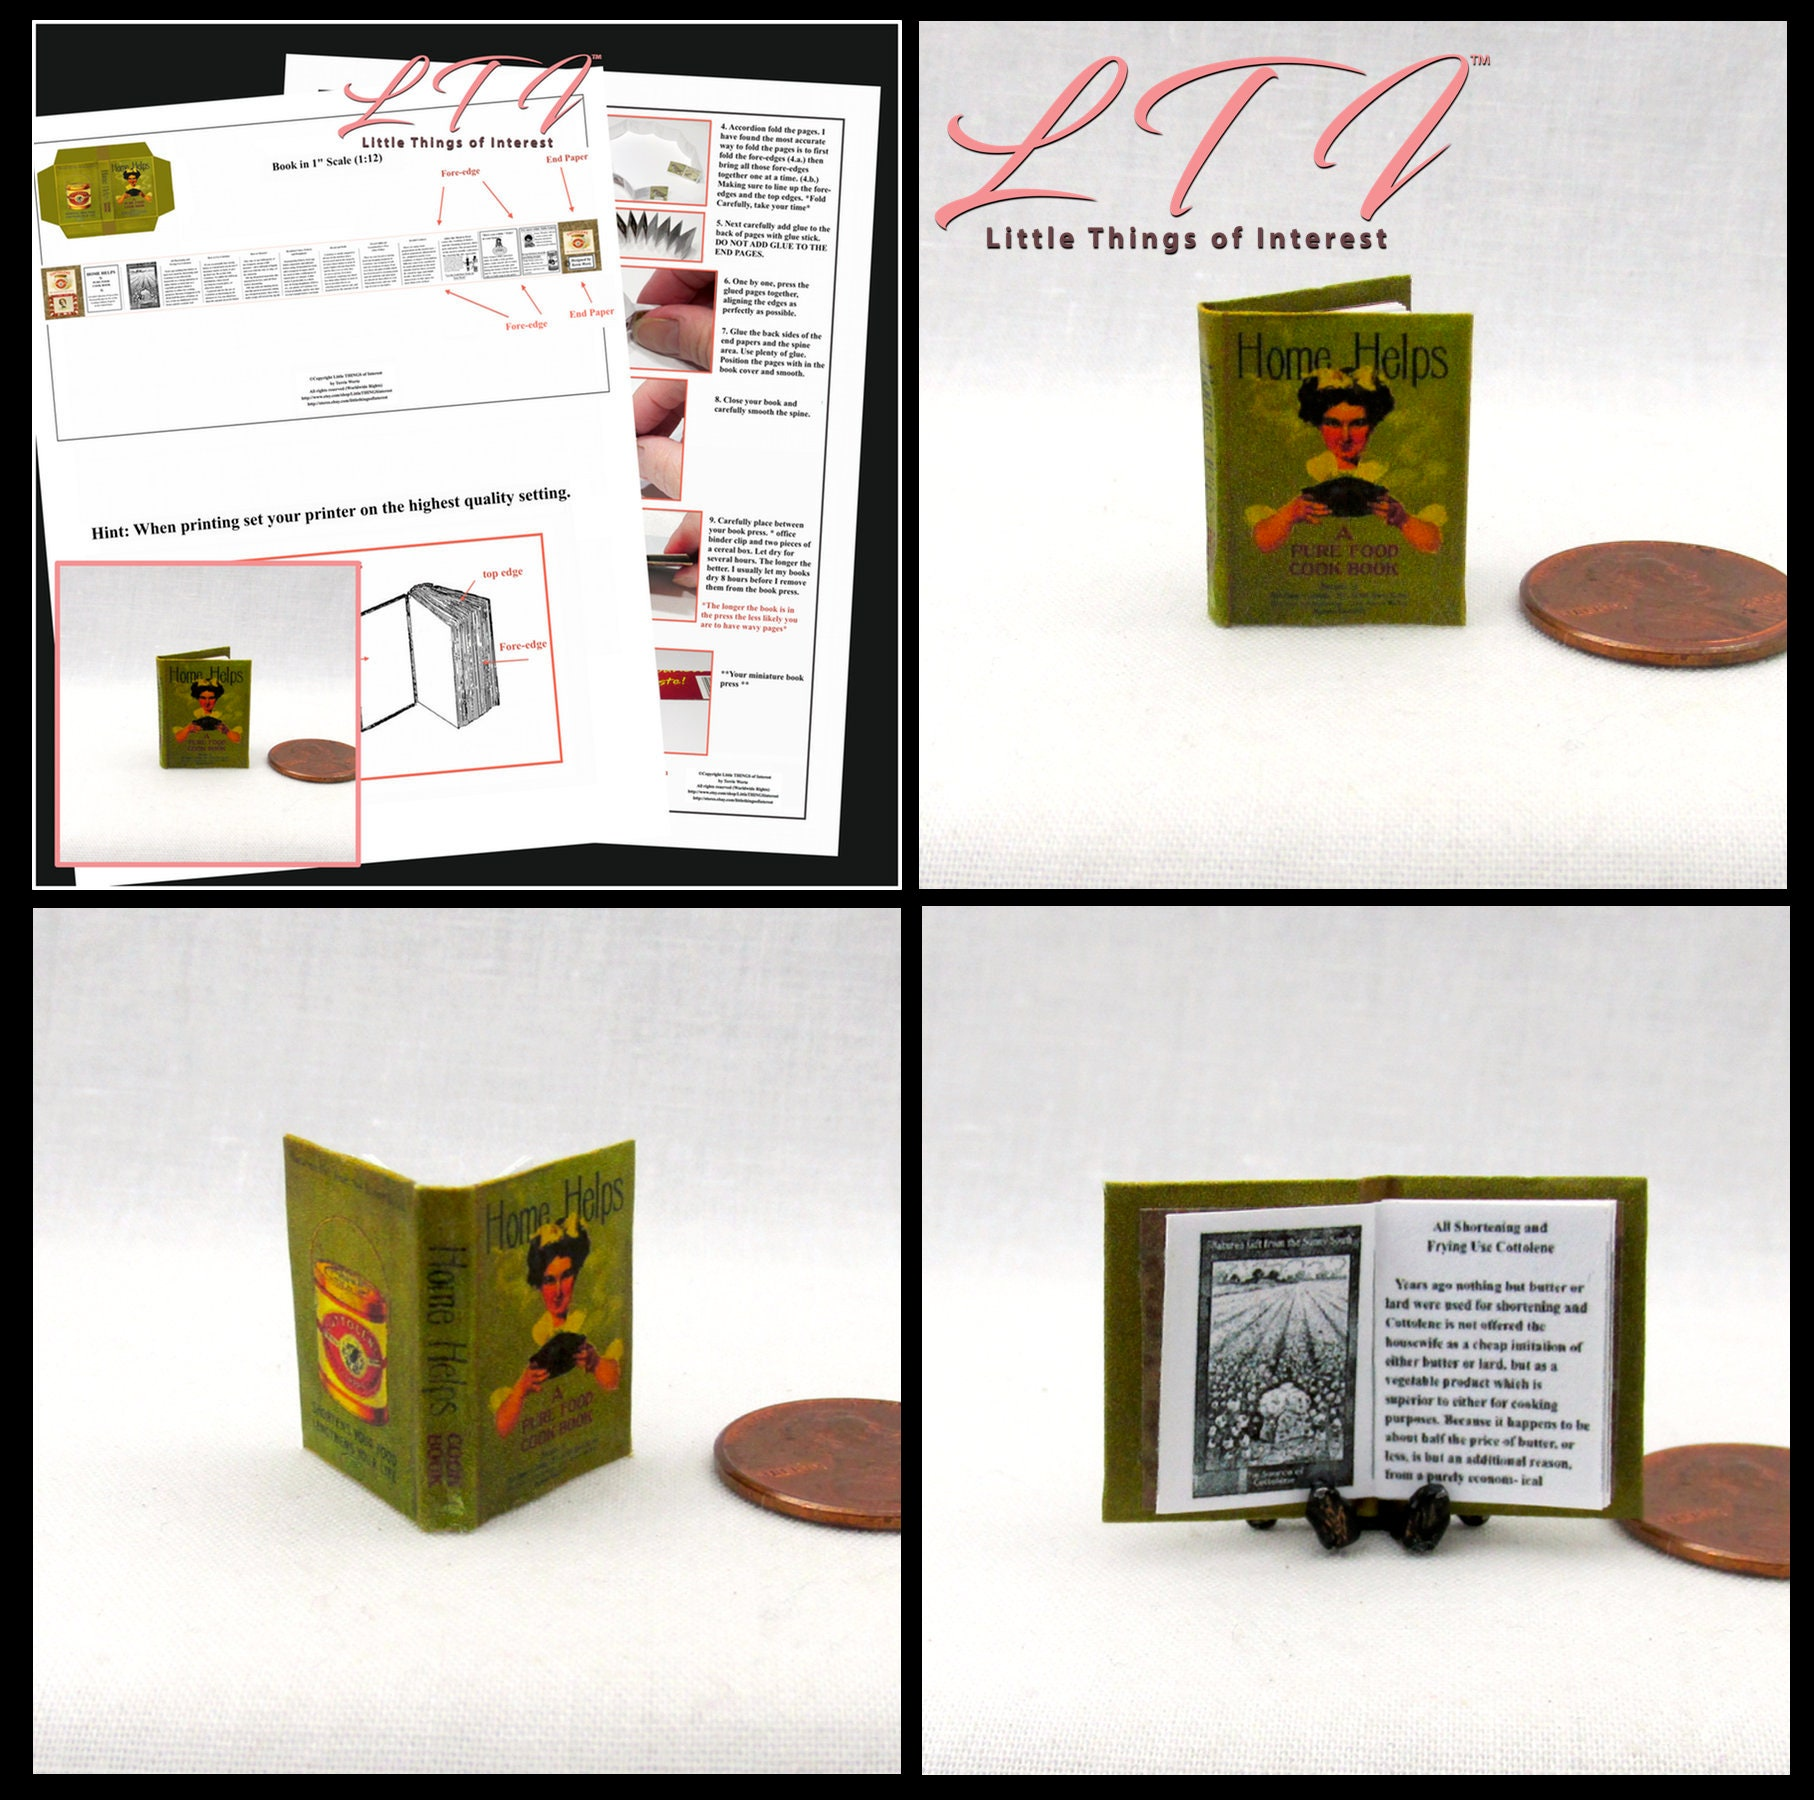 Home Helps Cookbook Downloadable 1 12 Miniature Dollhouse Scale Book